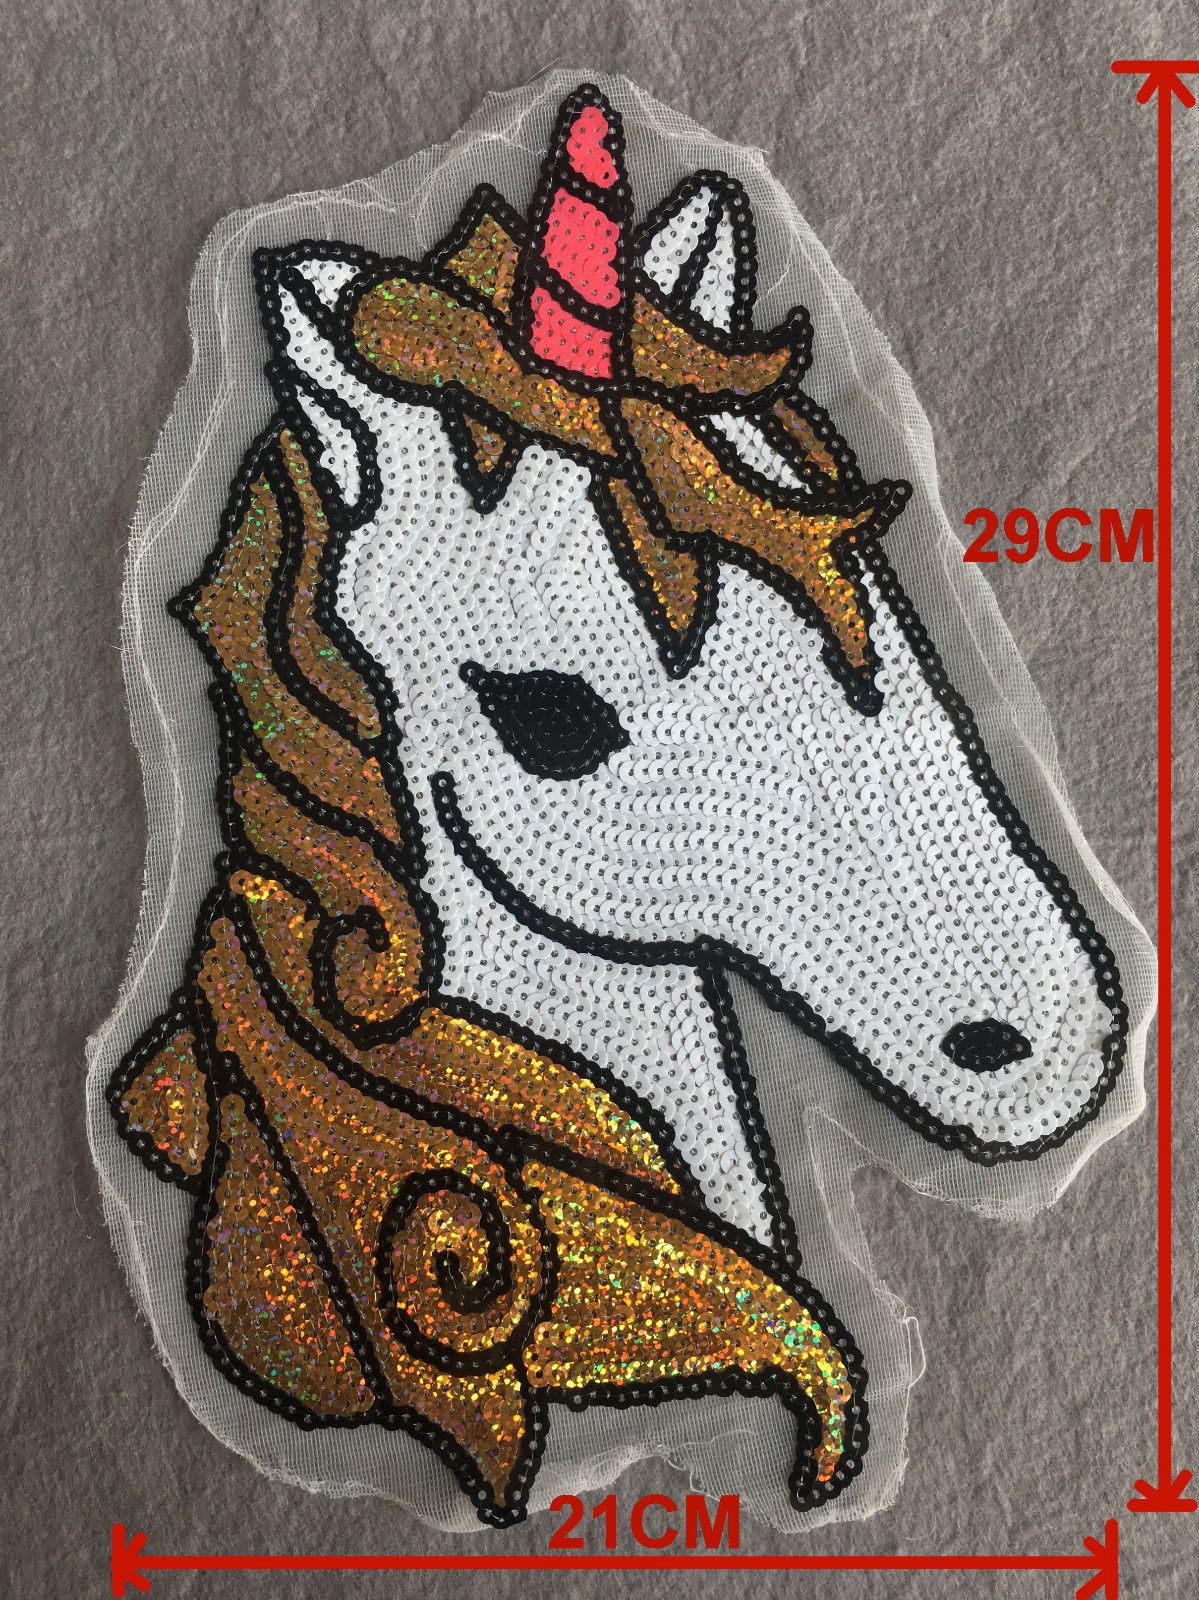 1 x Embroidered Unicorn Sew On//Iron On Patch Badge Applique DIY Motif